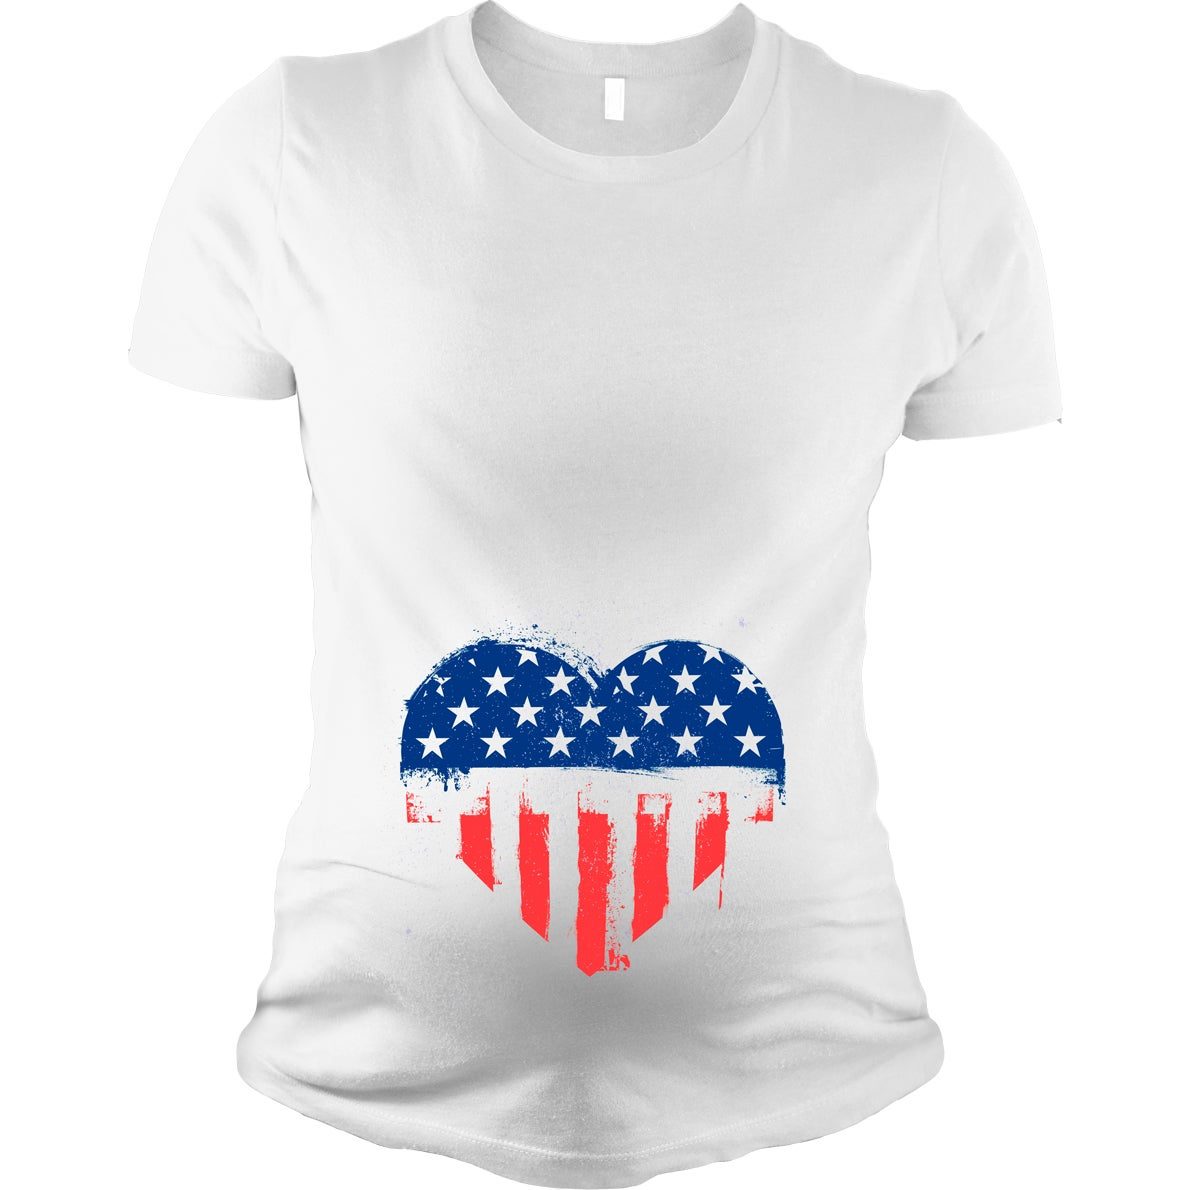 4ffcecae87879 Shop Maternity USA Heart American Flag T-shirt - On Sale - Free Shipping On Orders  Over $45 - Overstock - 18945987